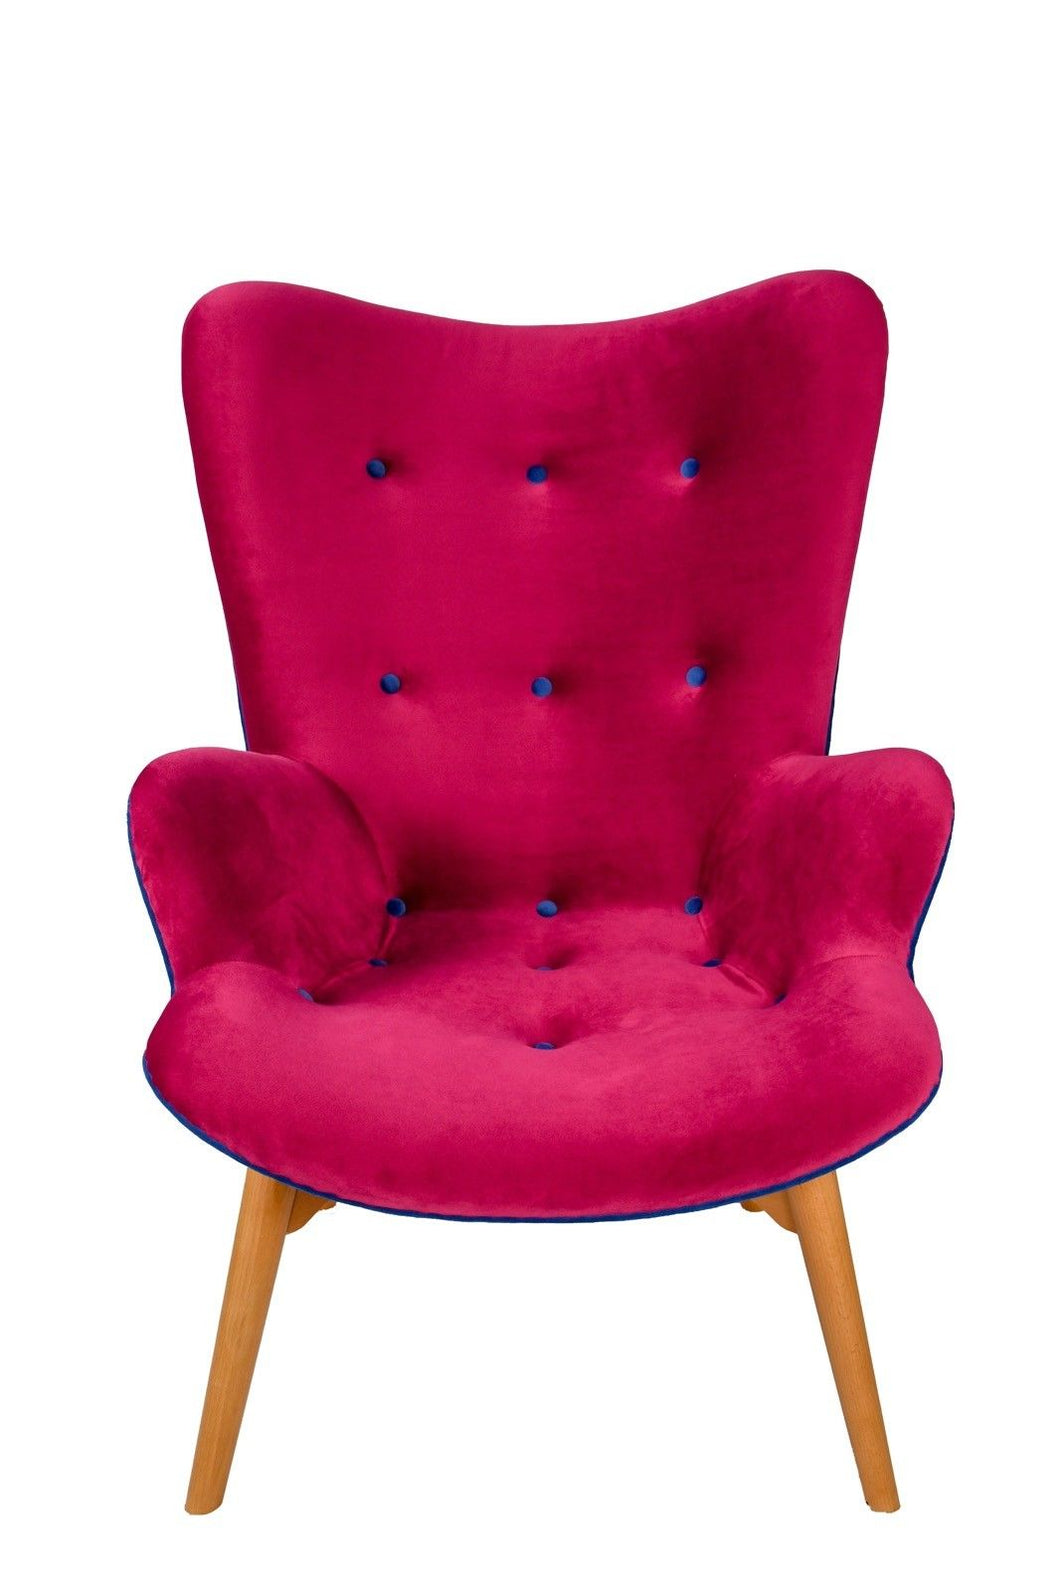 Grant Featherstone Style Comtempory Chair Clasic Cerise Velvet